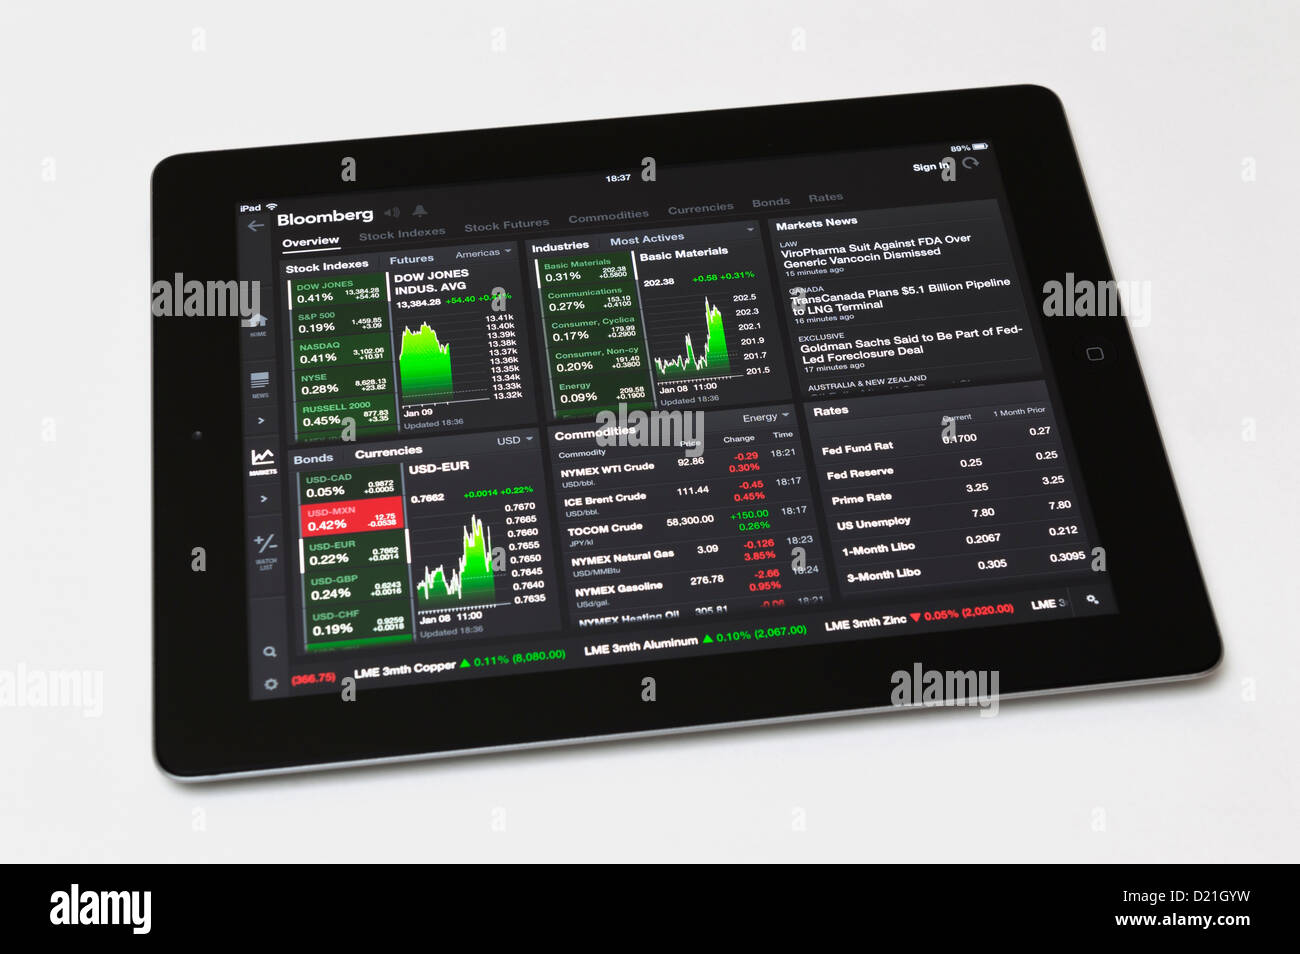 Bloomberg app on Apple iPad tablet showing live stock market